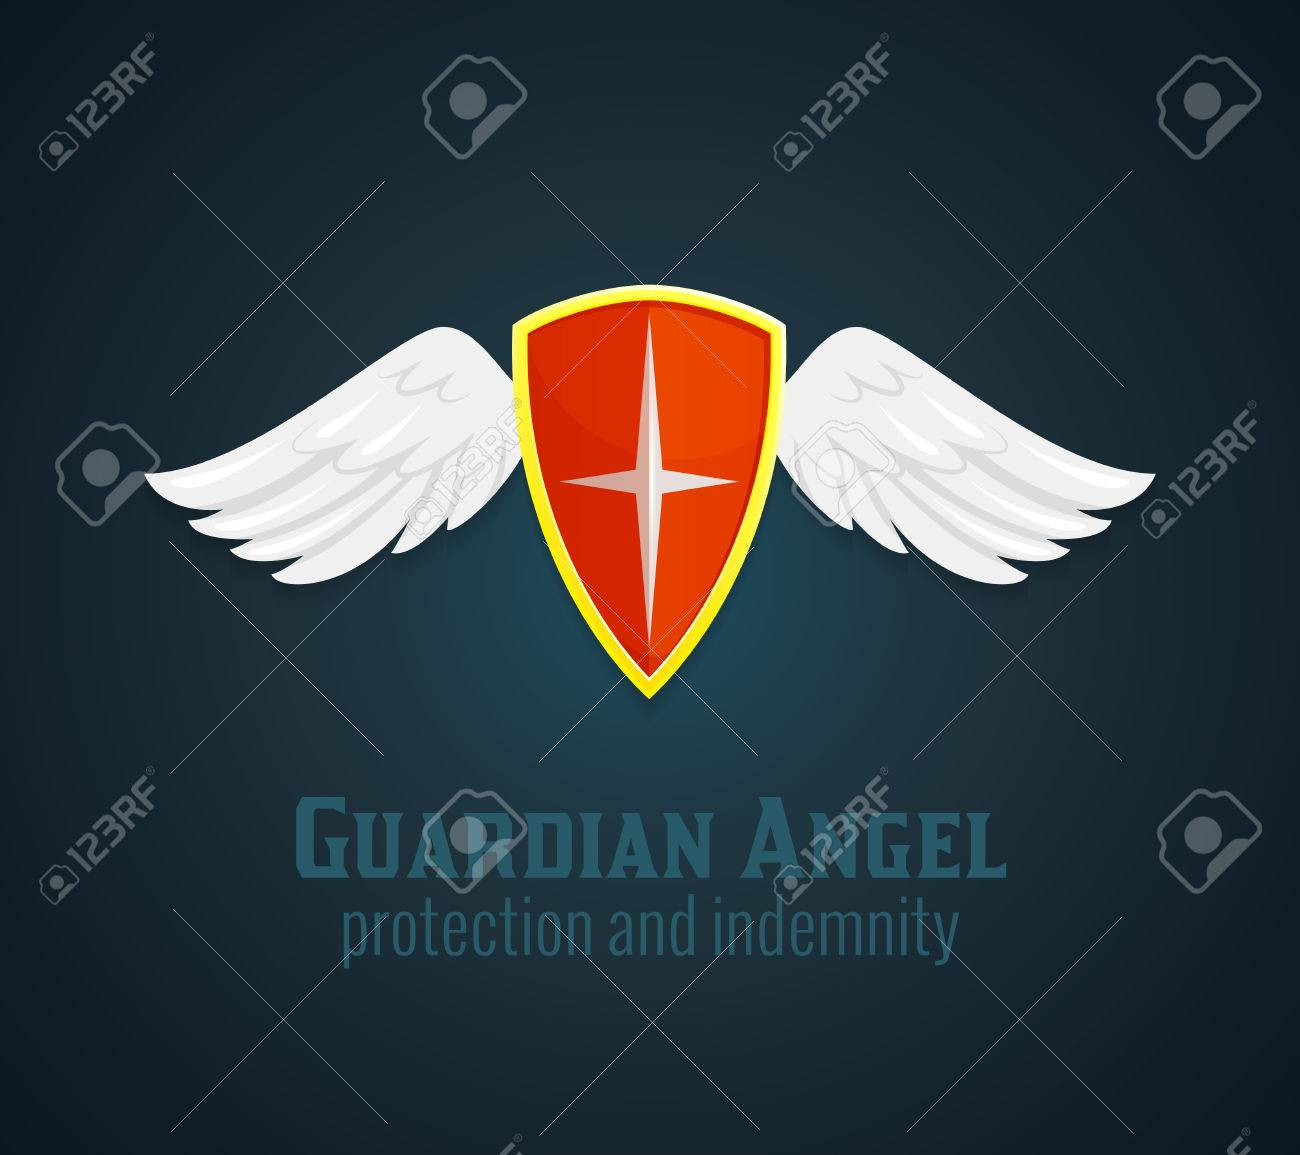 Antique Medieval Shield And Wings Icon With Guardian Angel